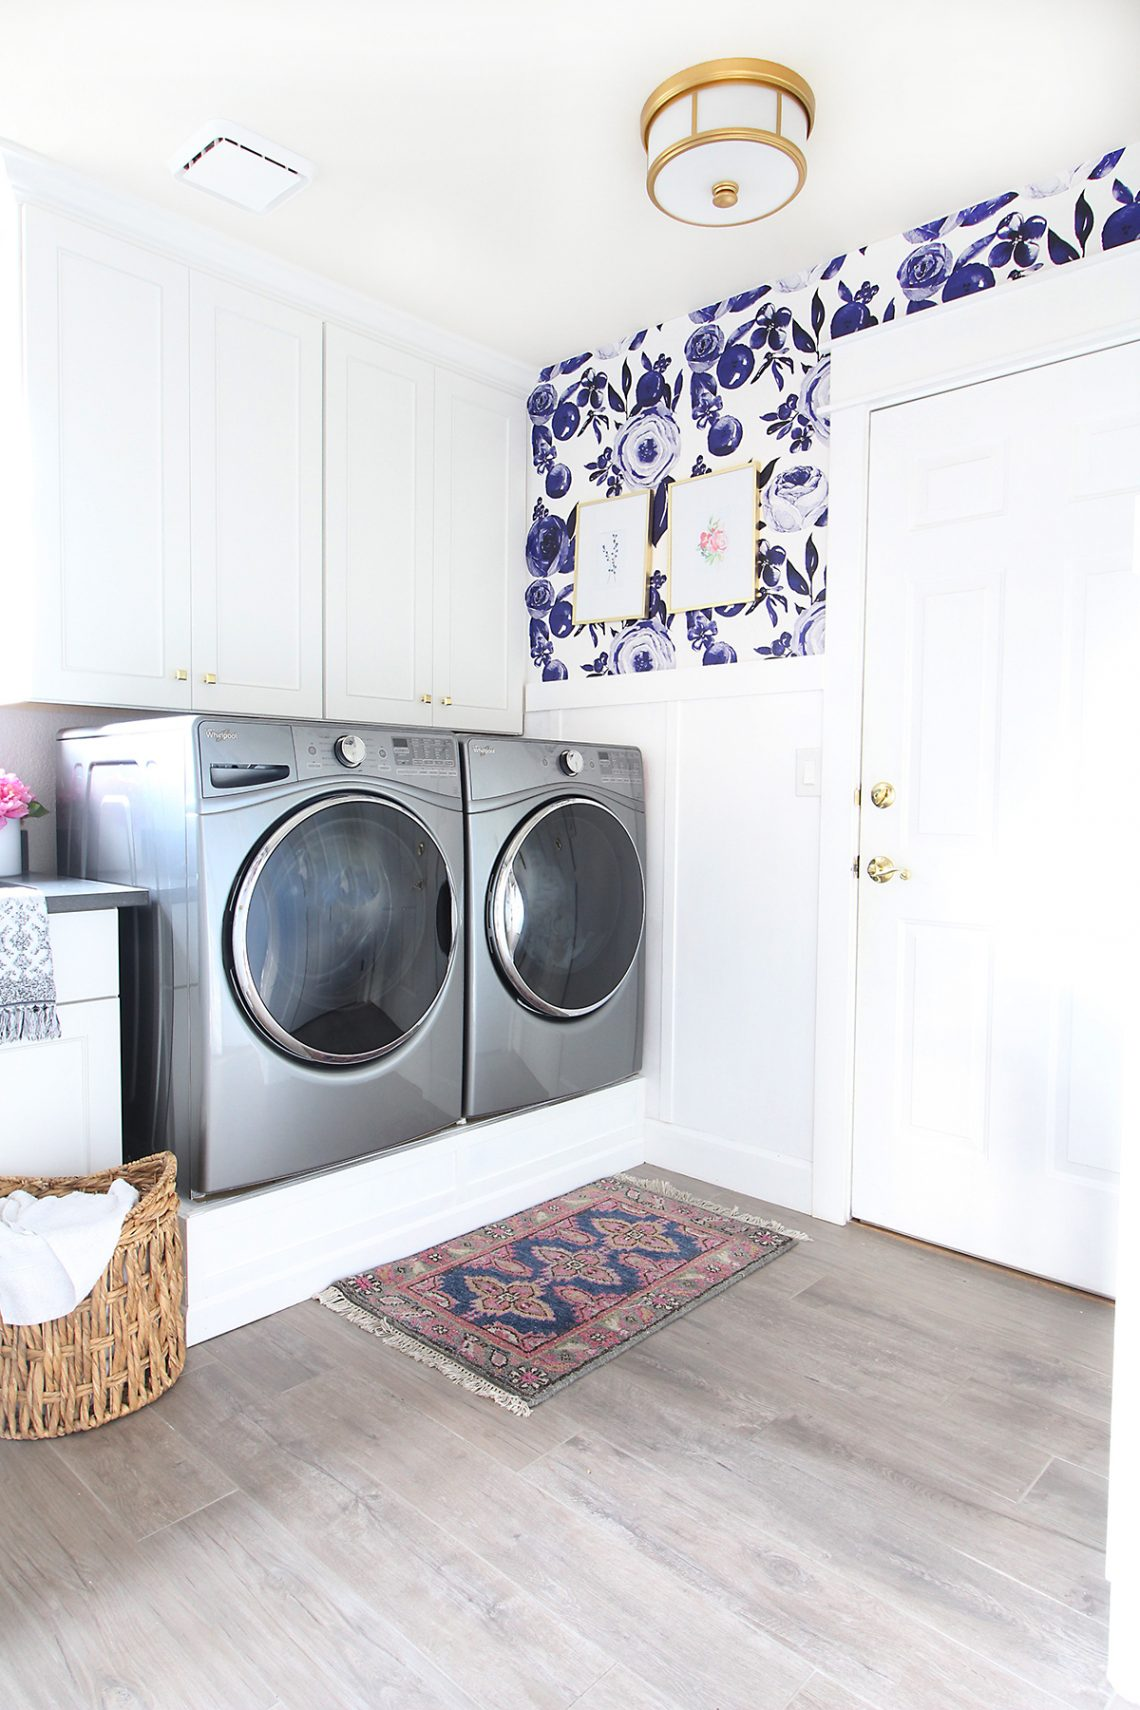 laundry makeover. Iu0027m Still Alive And I Am Excited To Finally Be Sharing A Room Makeover With You All This Pregnancy Broken Foot Have Really Slowed Me Down Haha Laundry